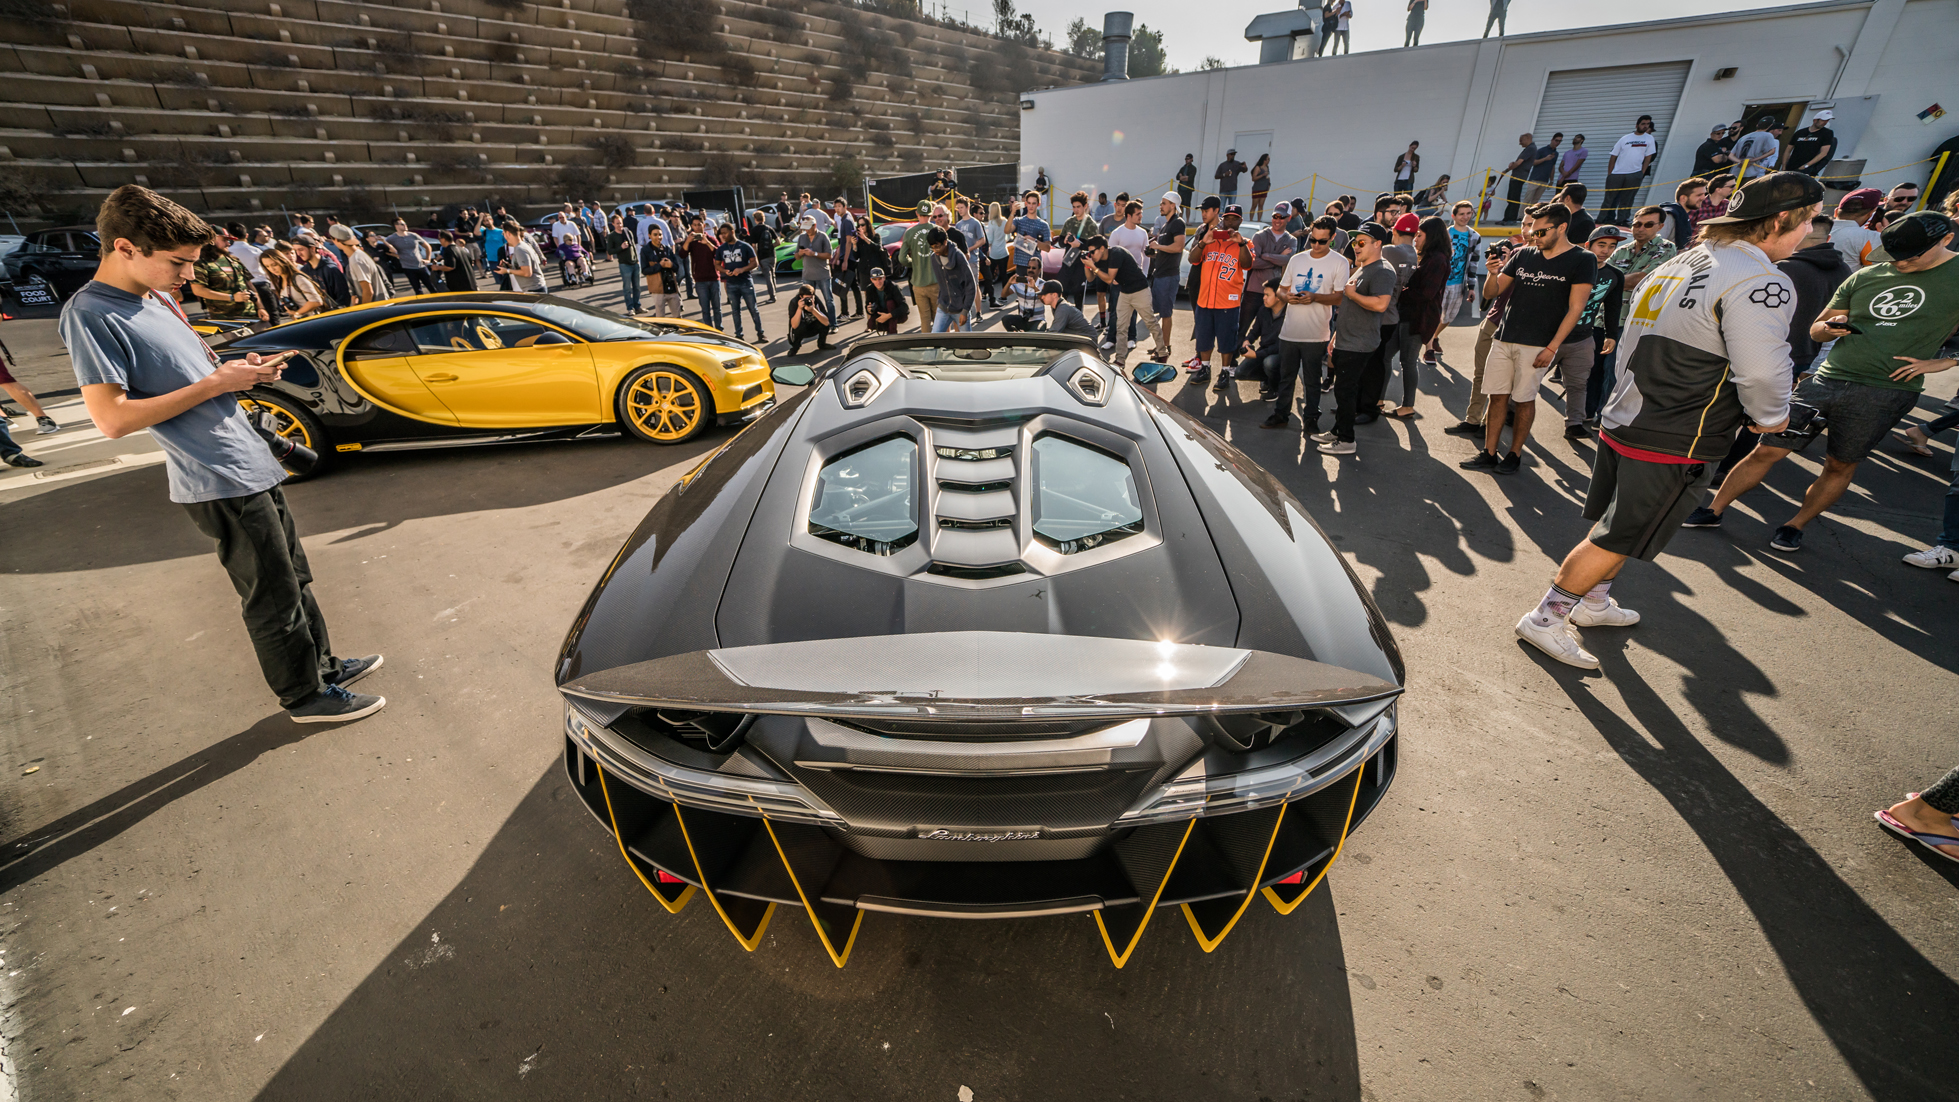 SAN DIEGO GT – CARS AND COFFEE REINVENTED - By: Robert Grubbs